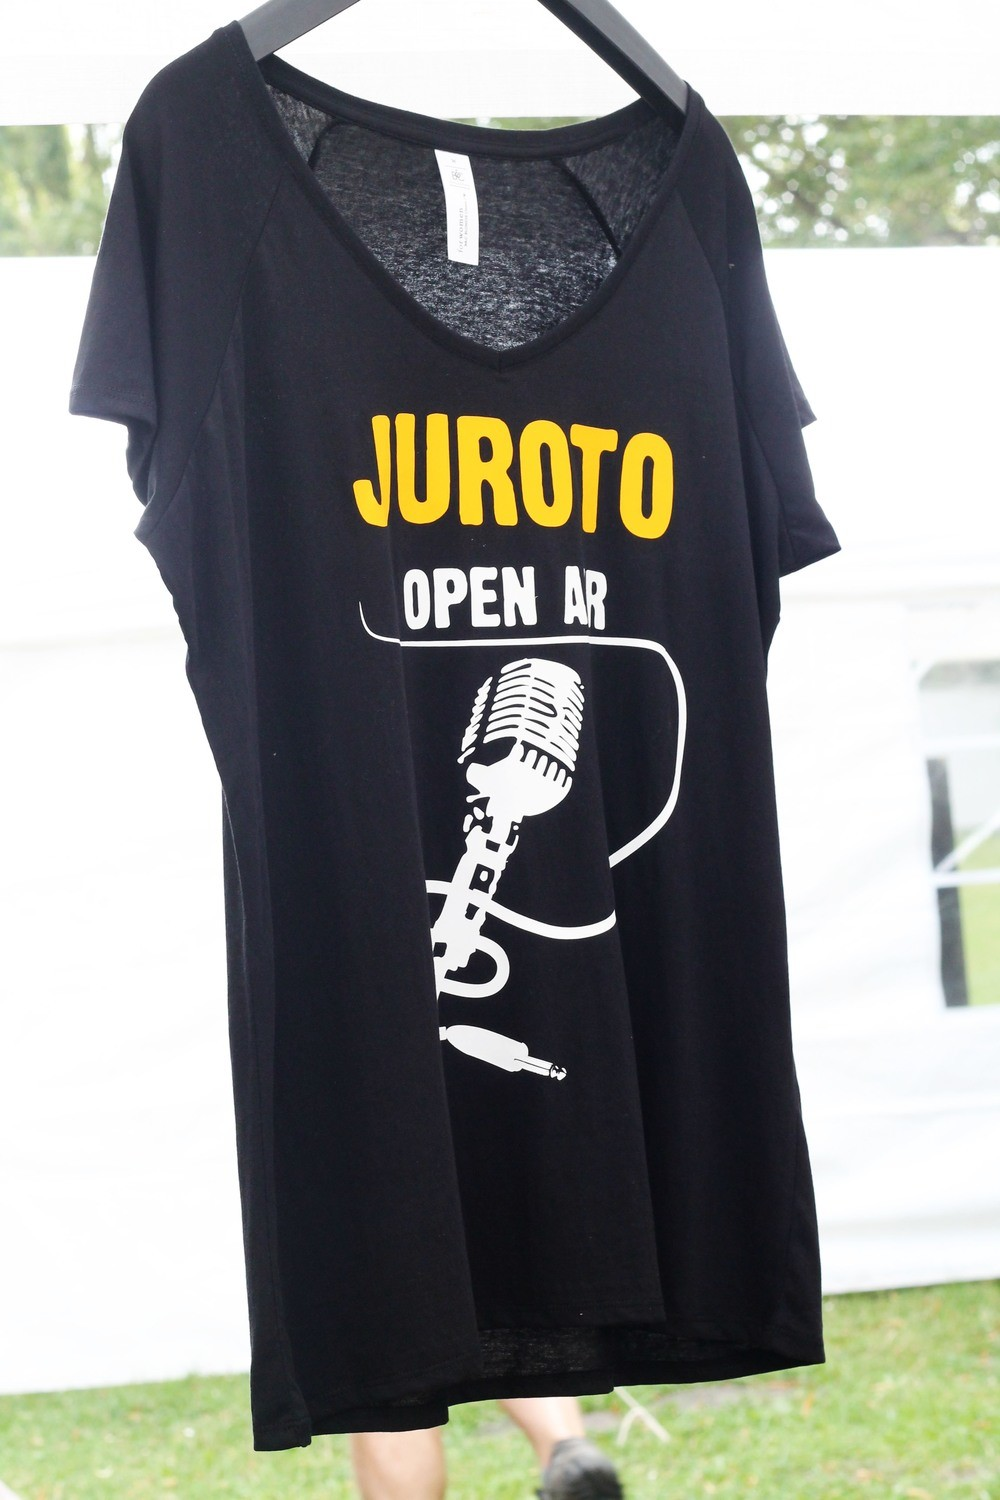 JUROTO Open Air Shirt